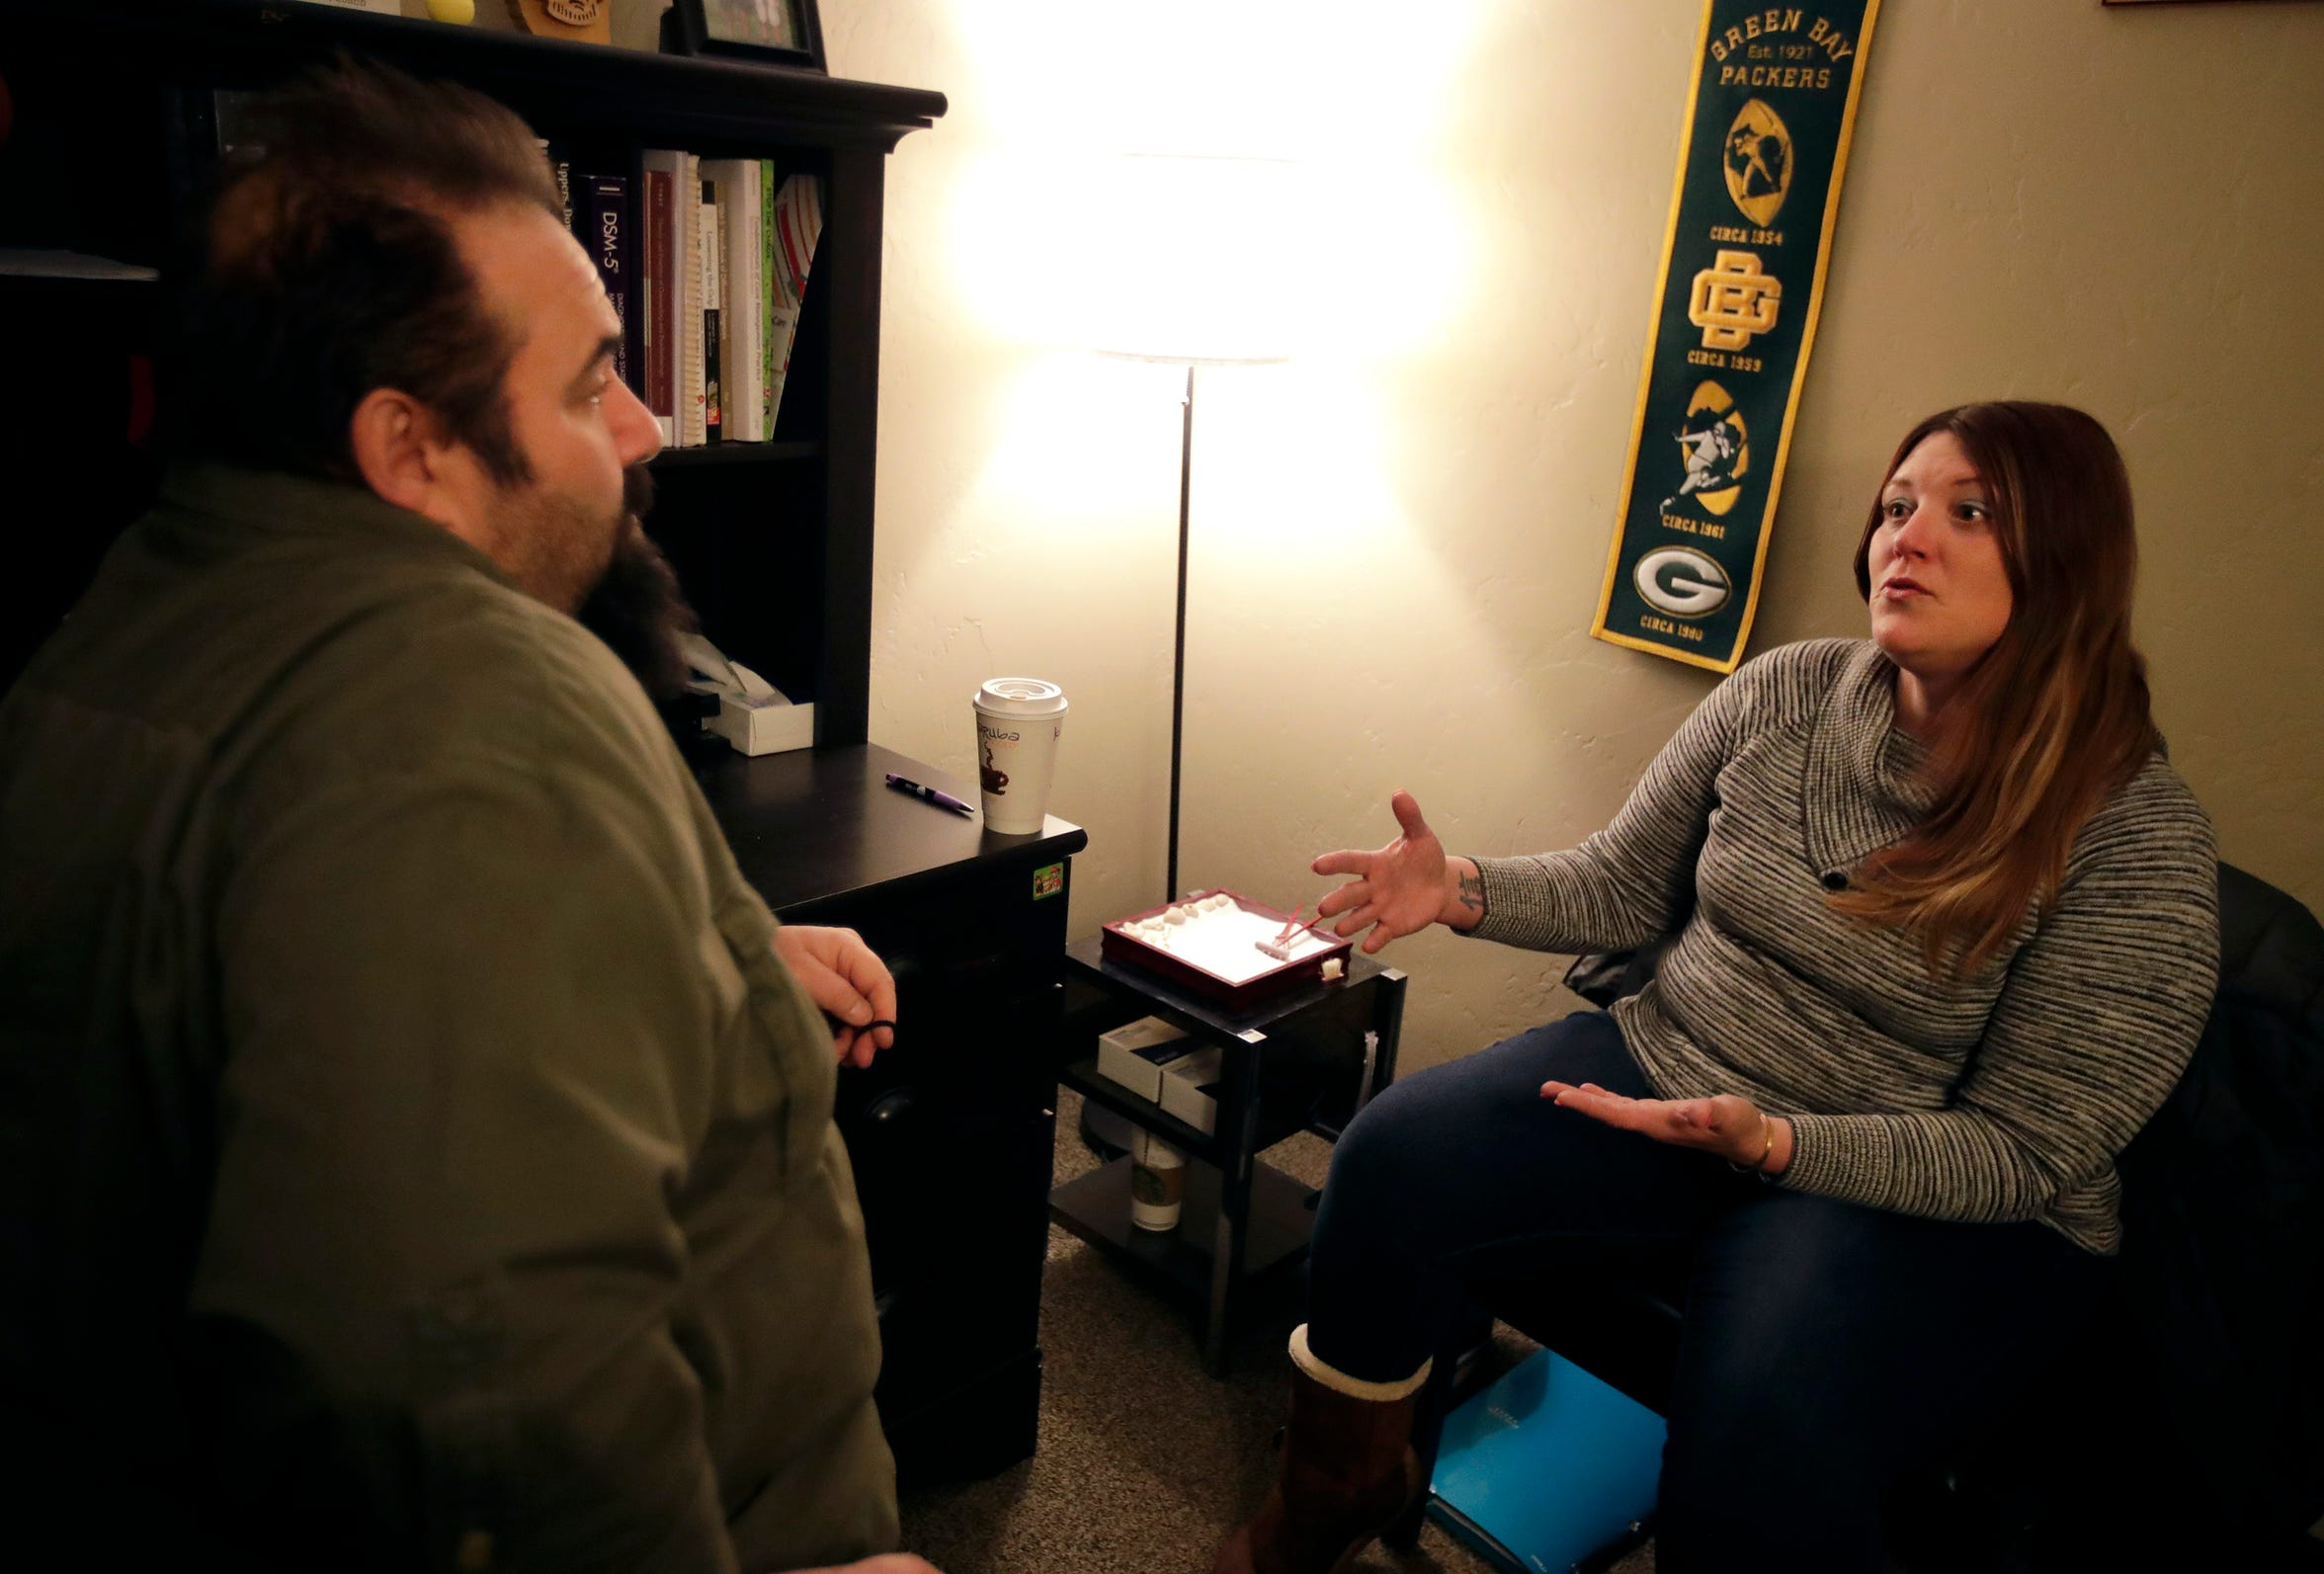 Melissa O'Krueg sits down with substance abuse counselor Patrick Carlson at Addiction Medical Solutions, an opioid treatment program in Oshkosh.